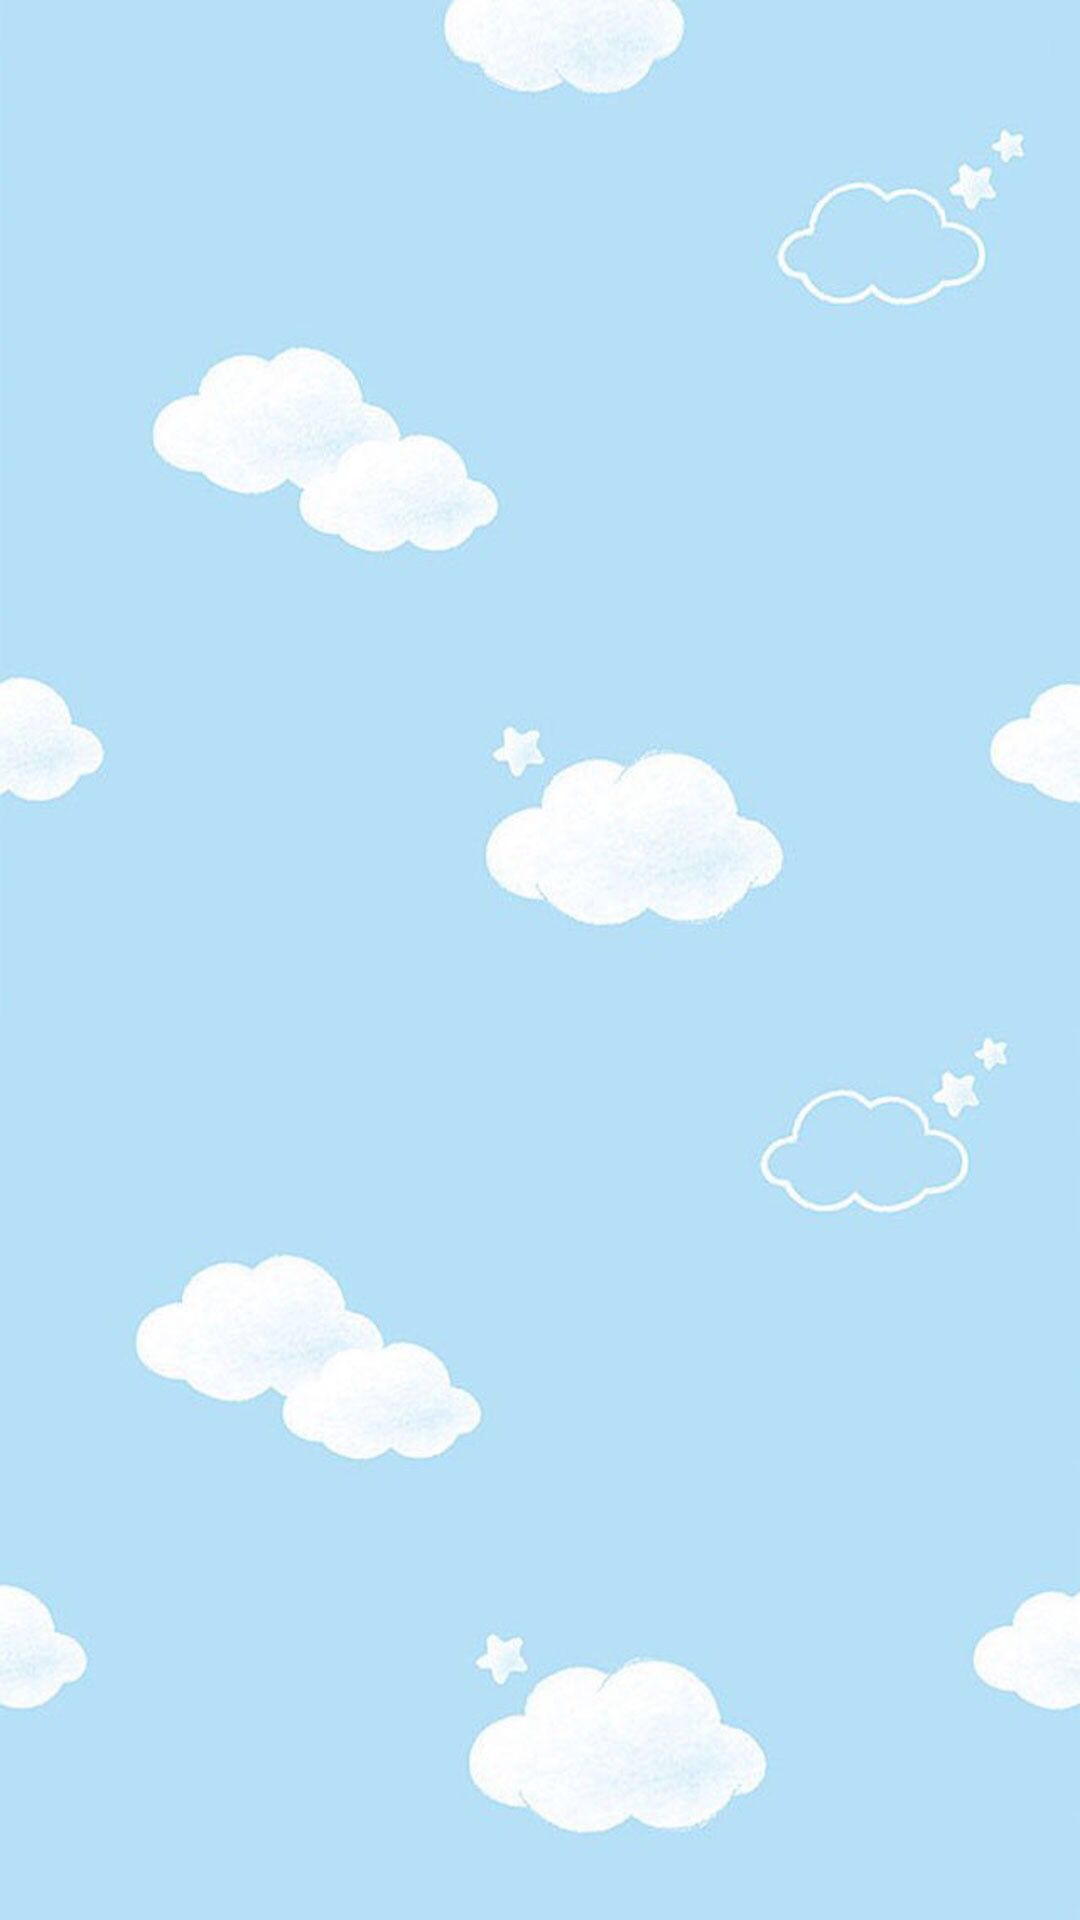 Blue white mini clouds stars iphone wallpaper phone